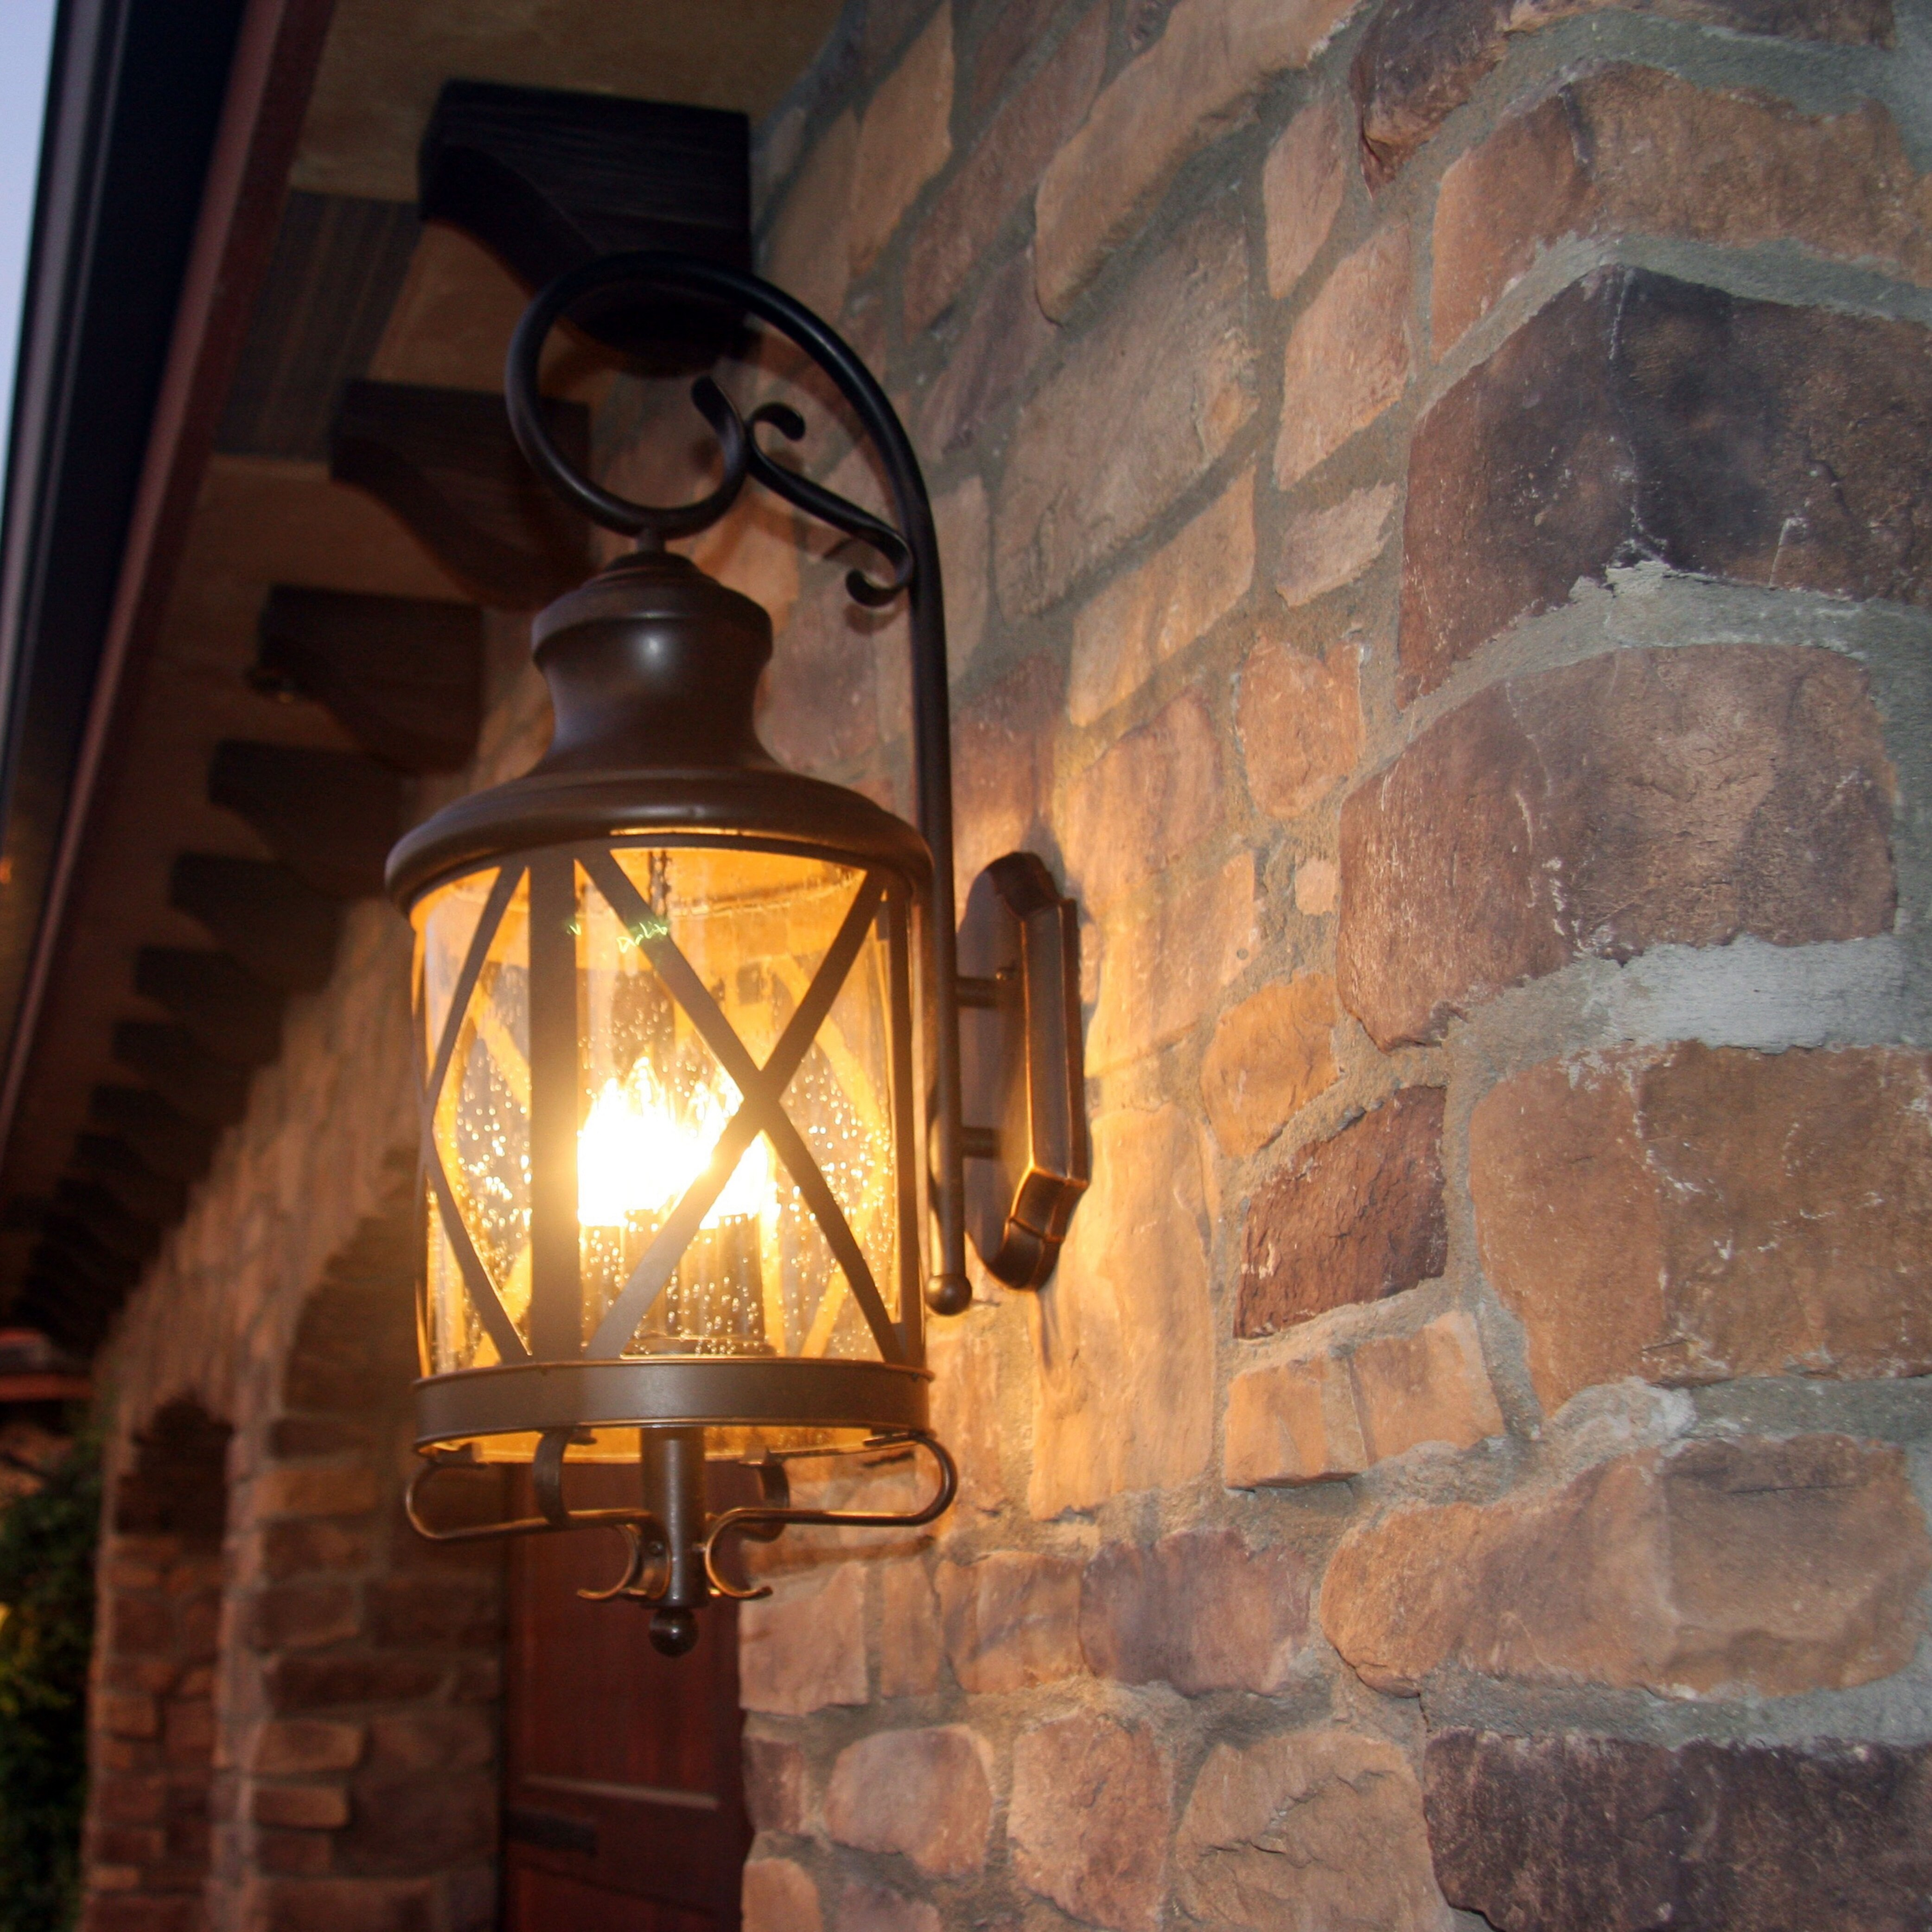 lighting safe kdvryem a in your lights and way using lantern outdoor